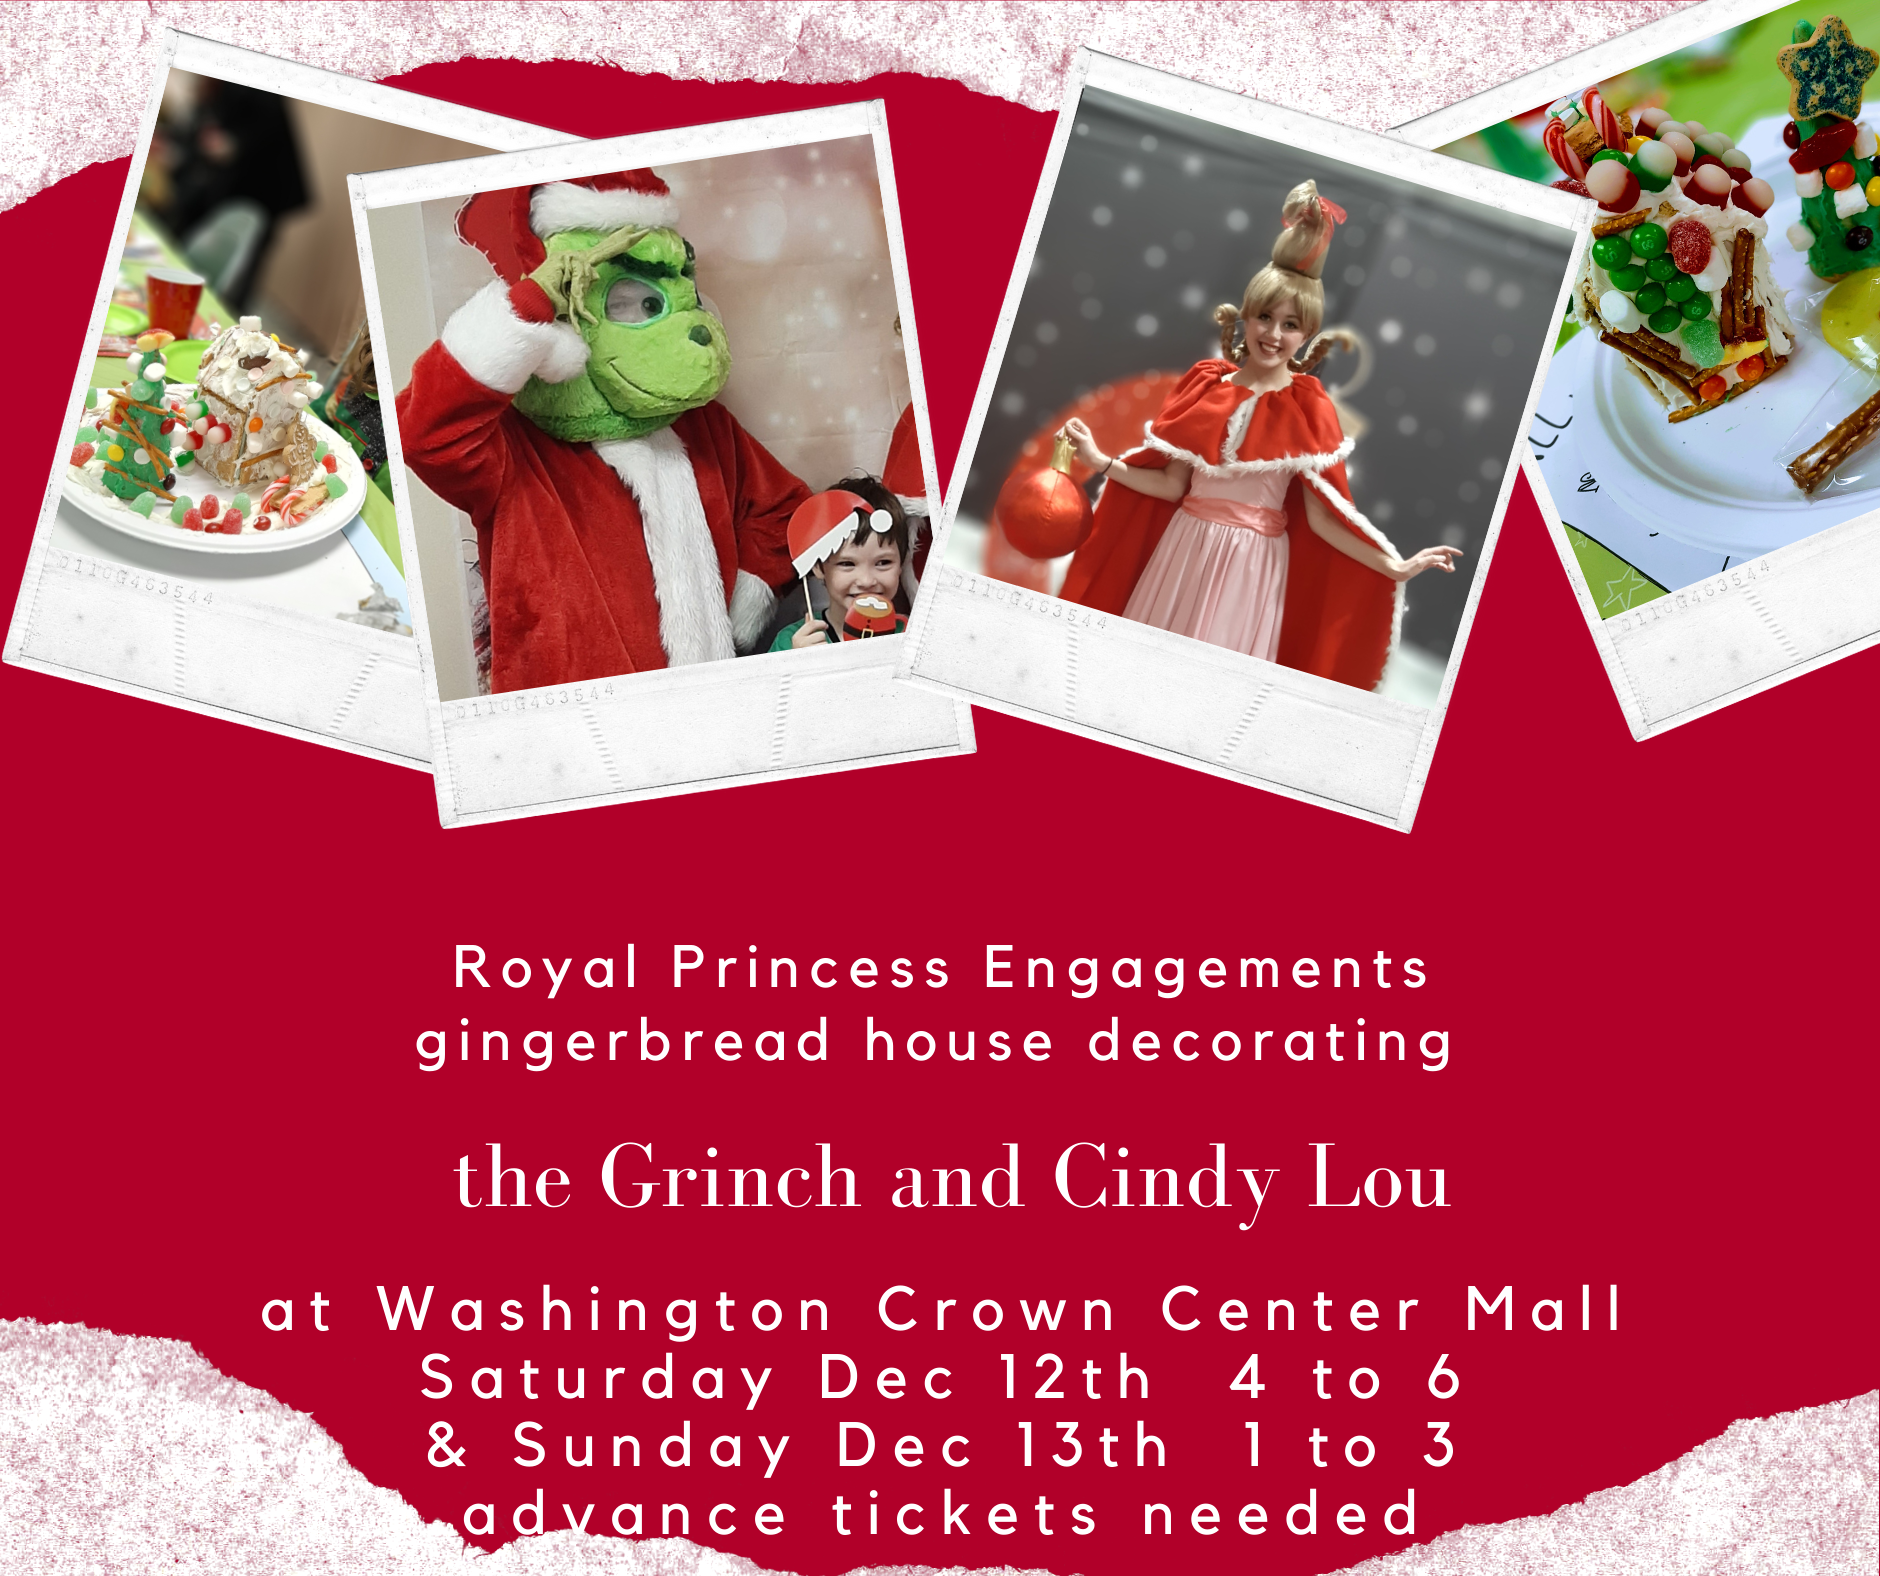 Four photos in a banner two have colorful gingerbread houses, one is a photo of the grinch and one is cindy lou who